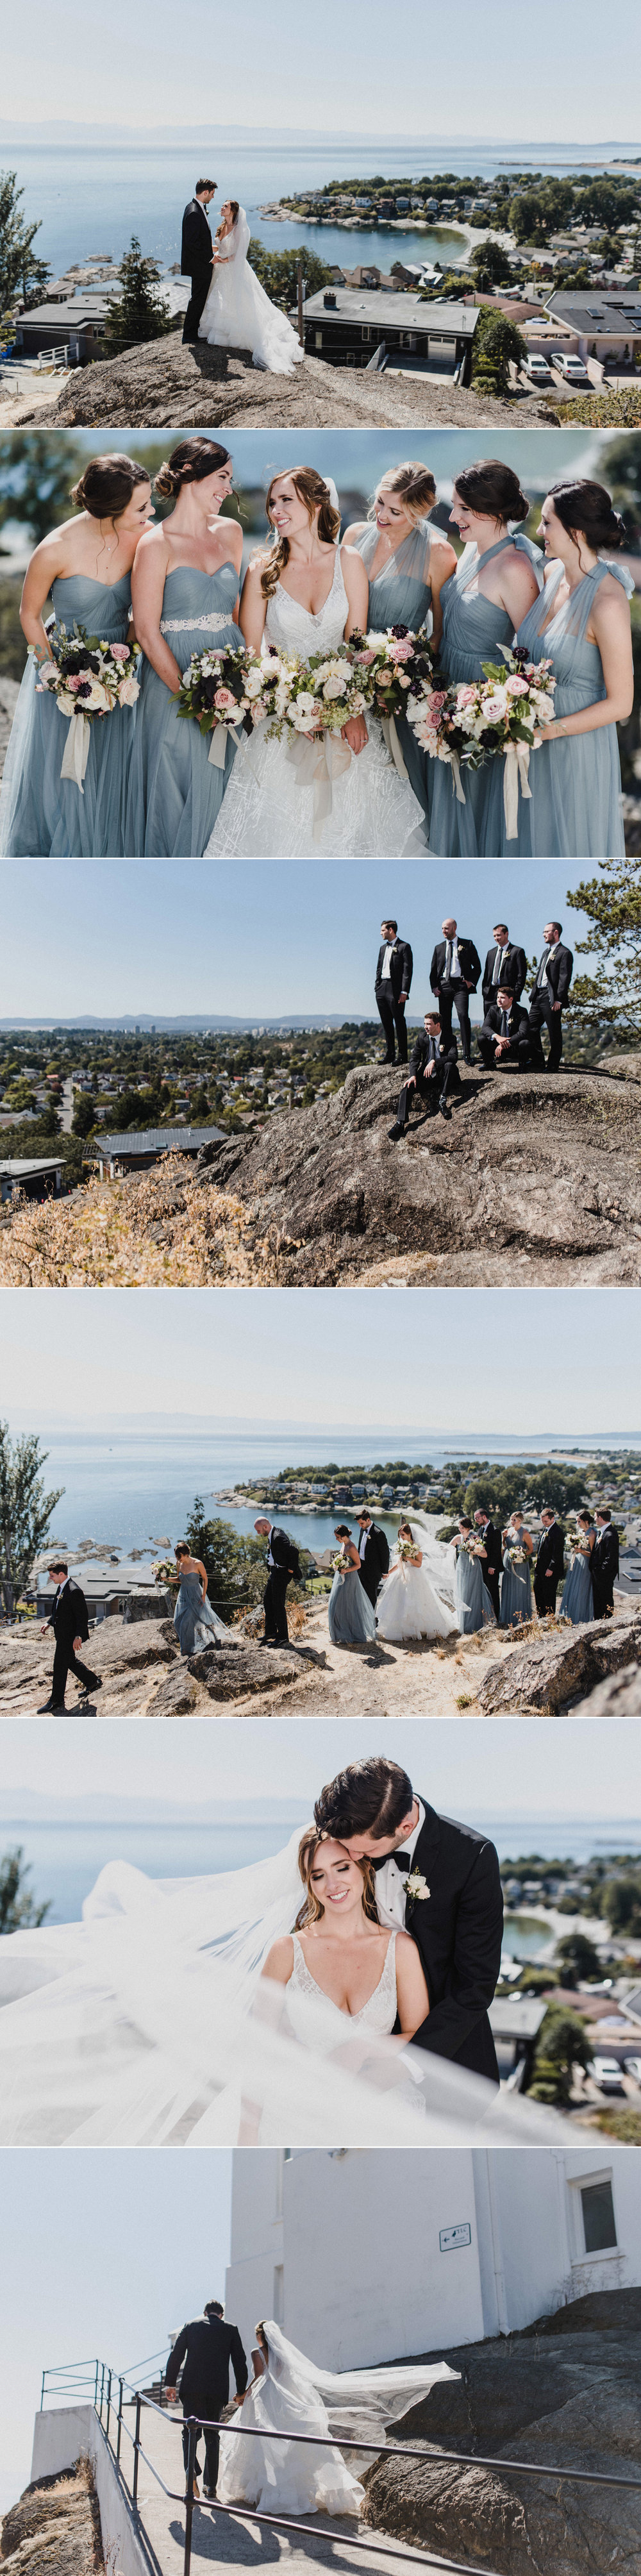 victoria bc wedding